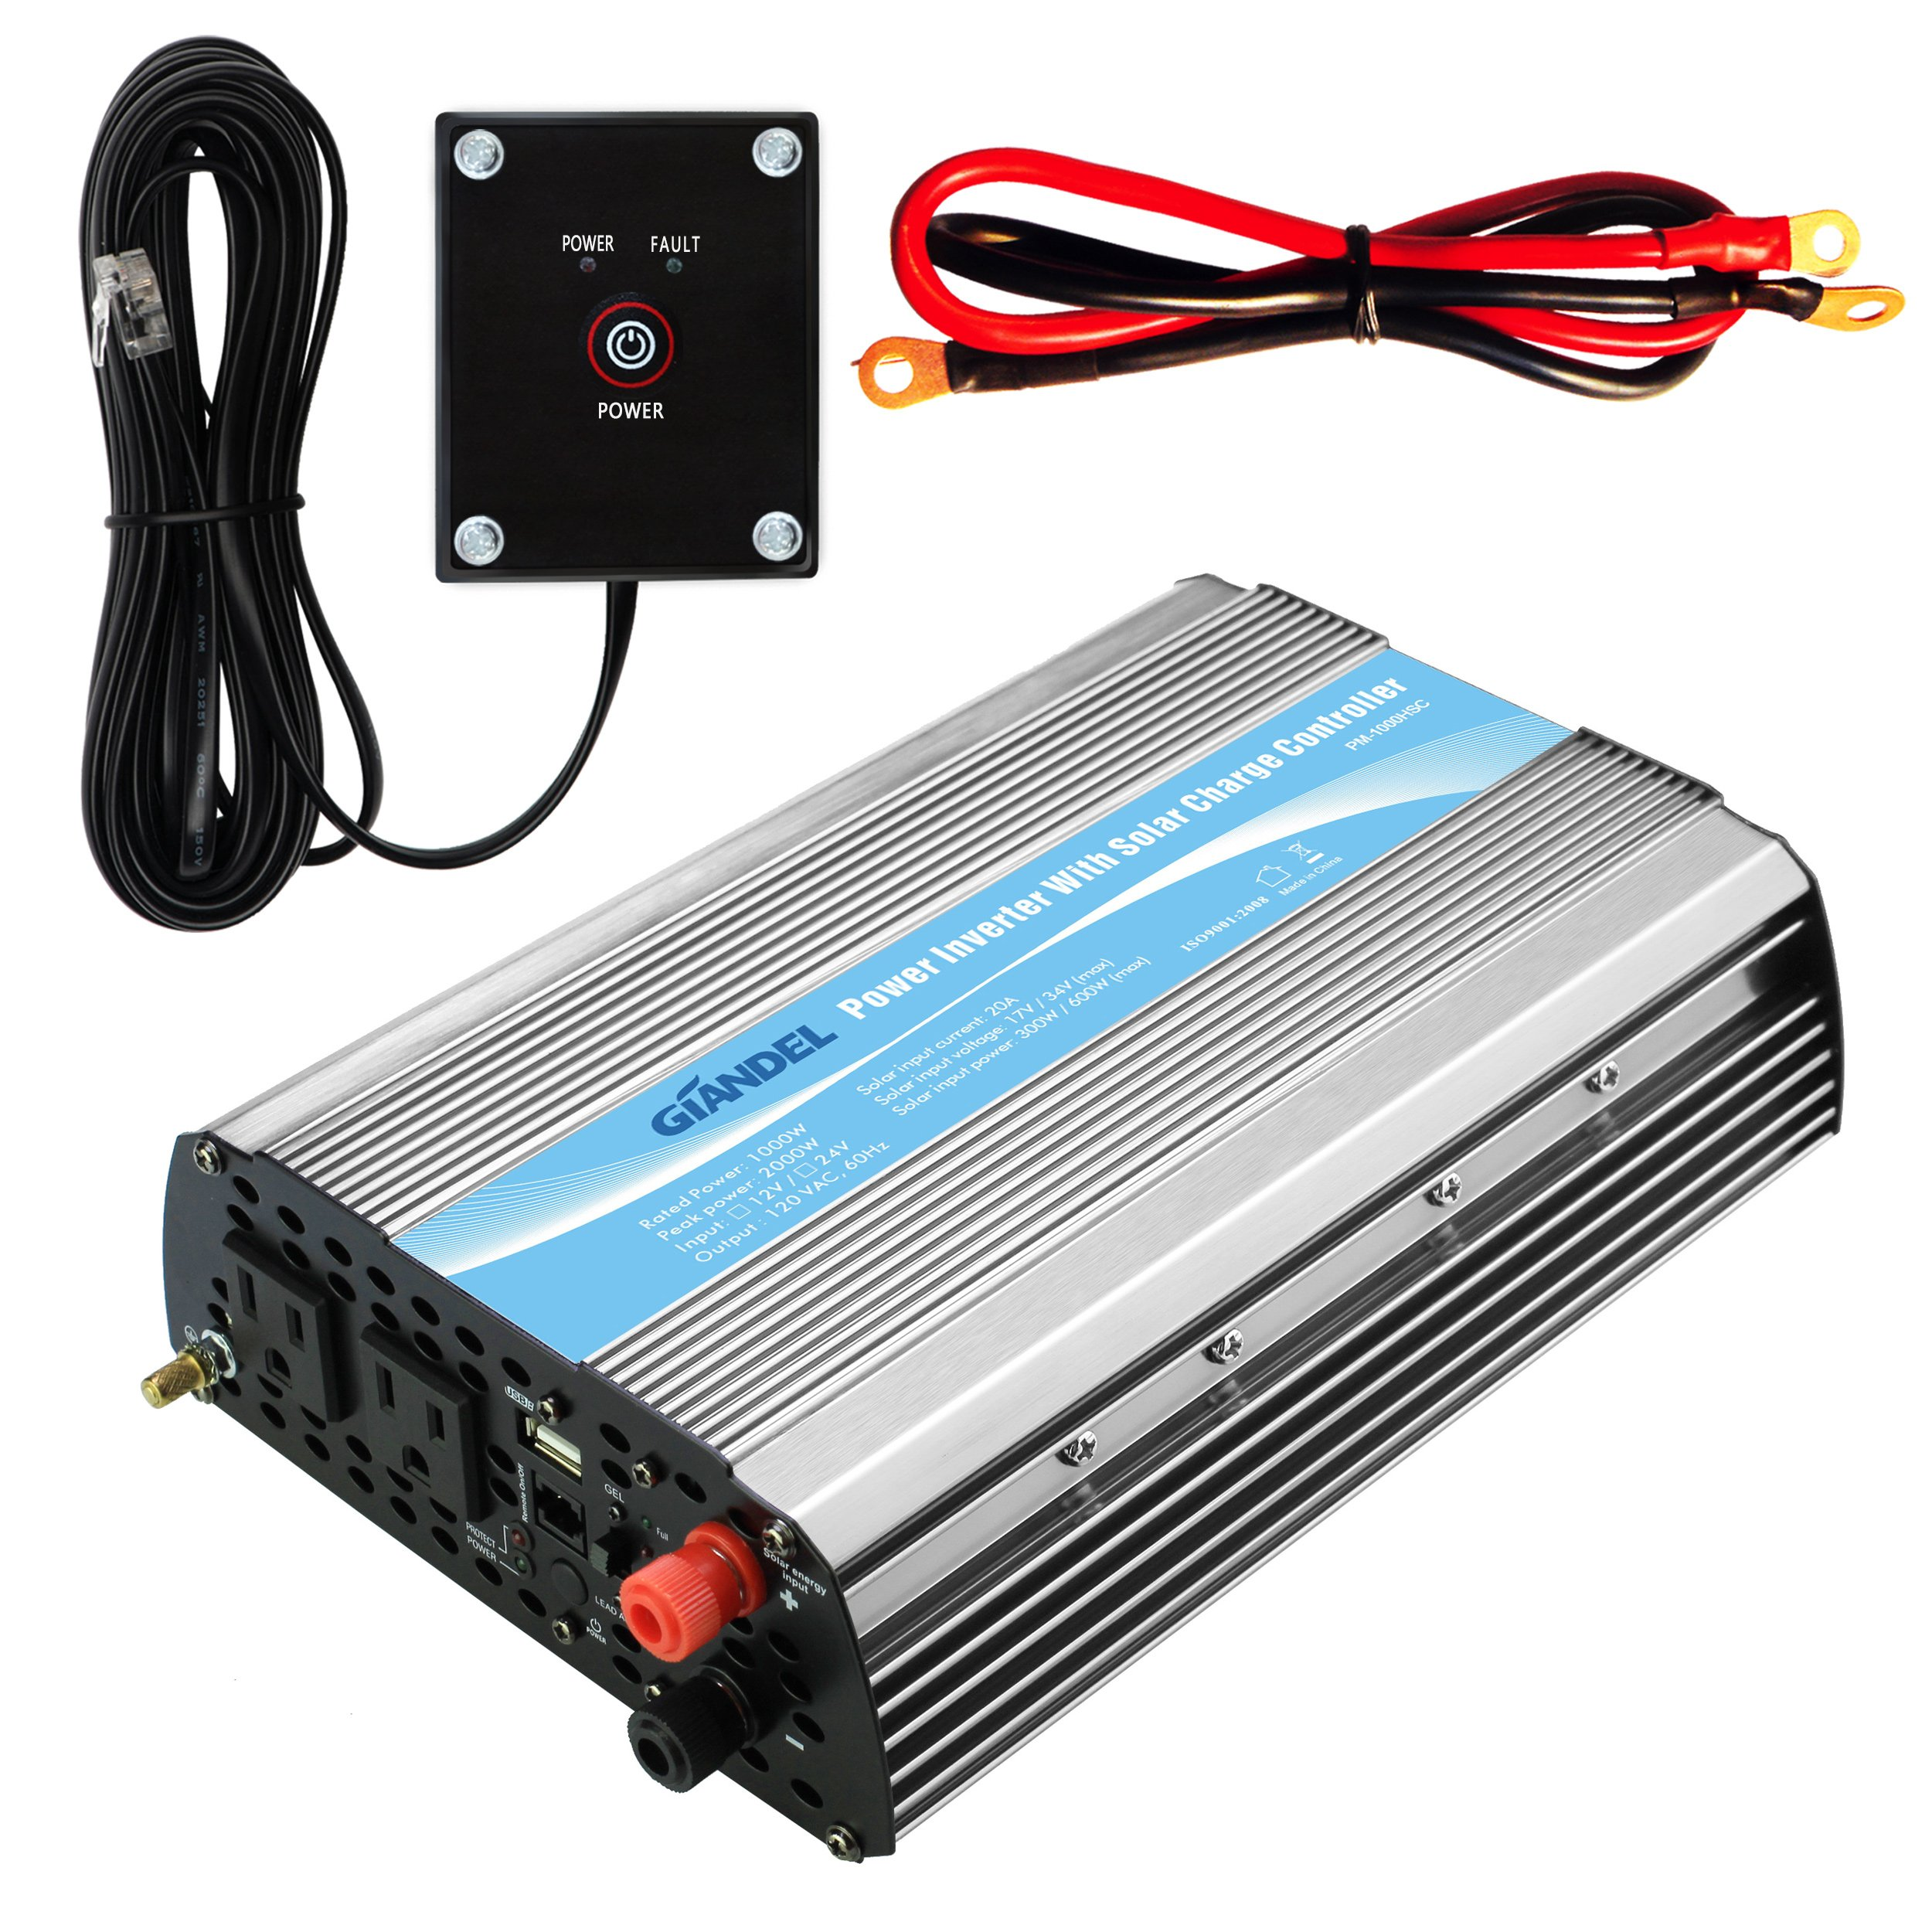 Giandel 1000Watt Power Inverter 24V DC to 110V-120VAC with Remote Controller and Solar Charge Control and Dual AC Outlets & USB Port by GIANDEL